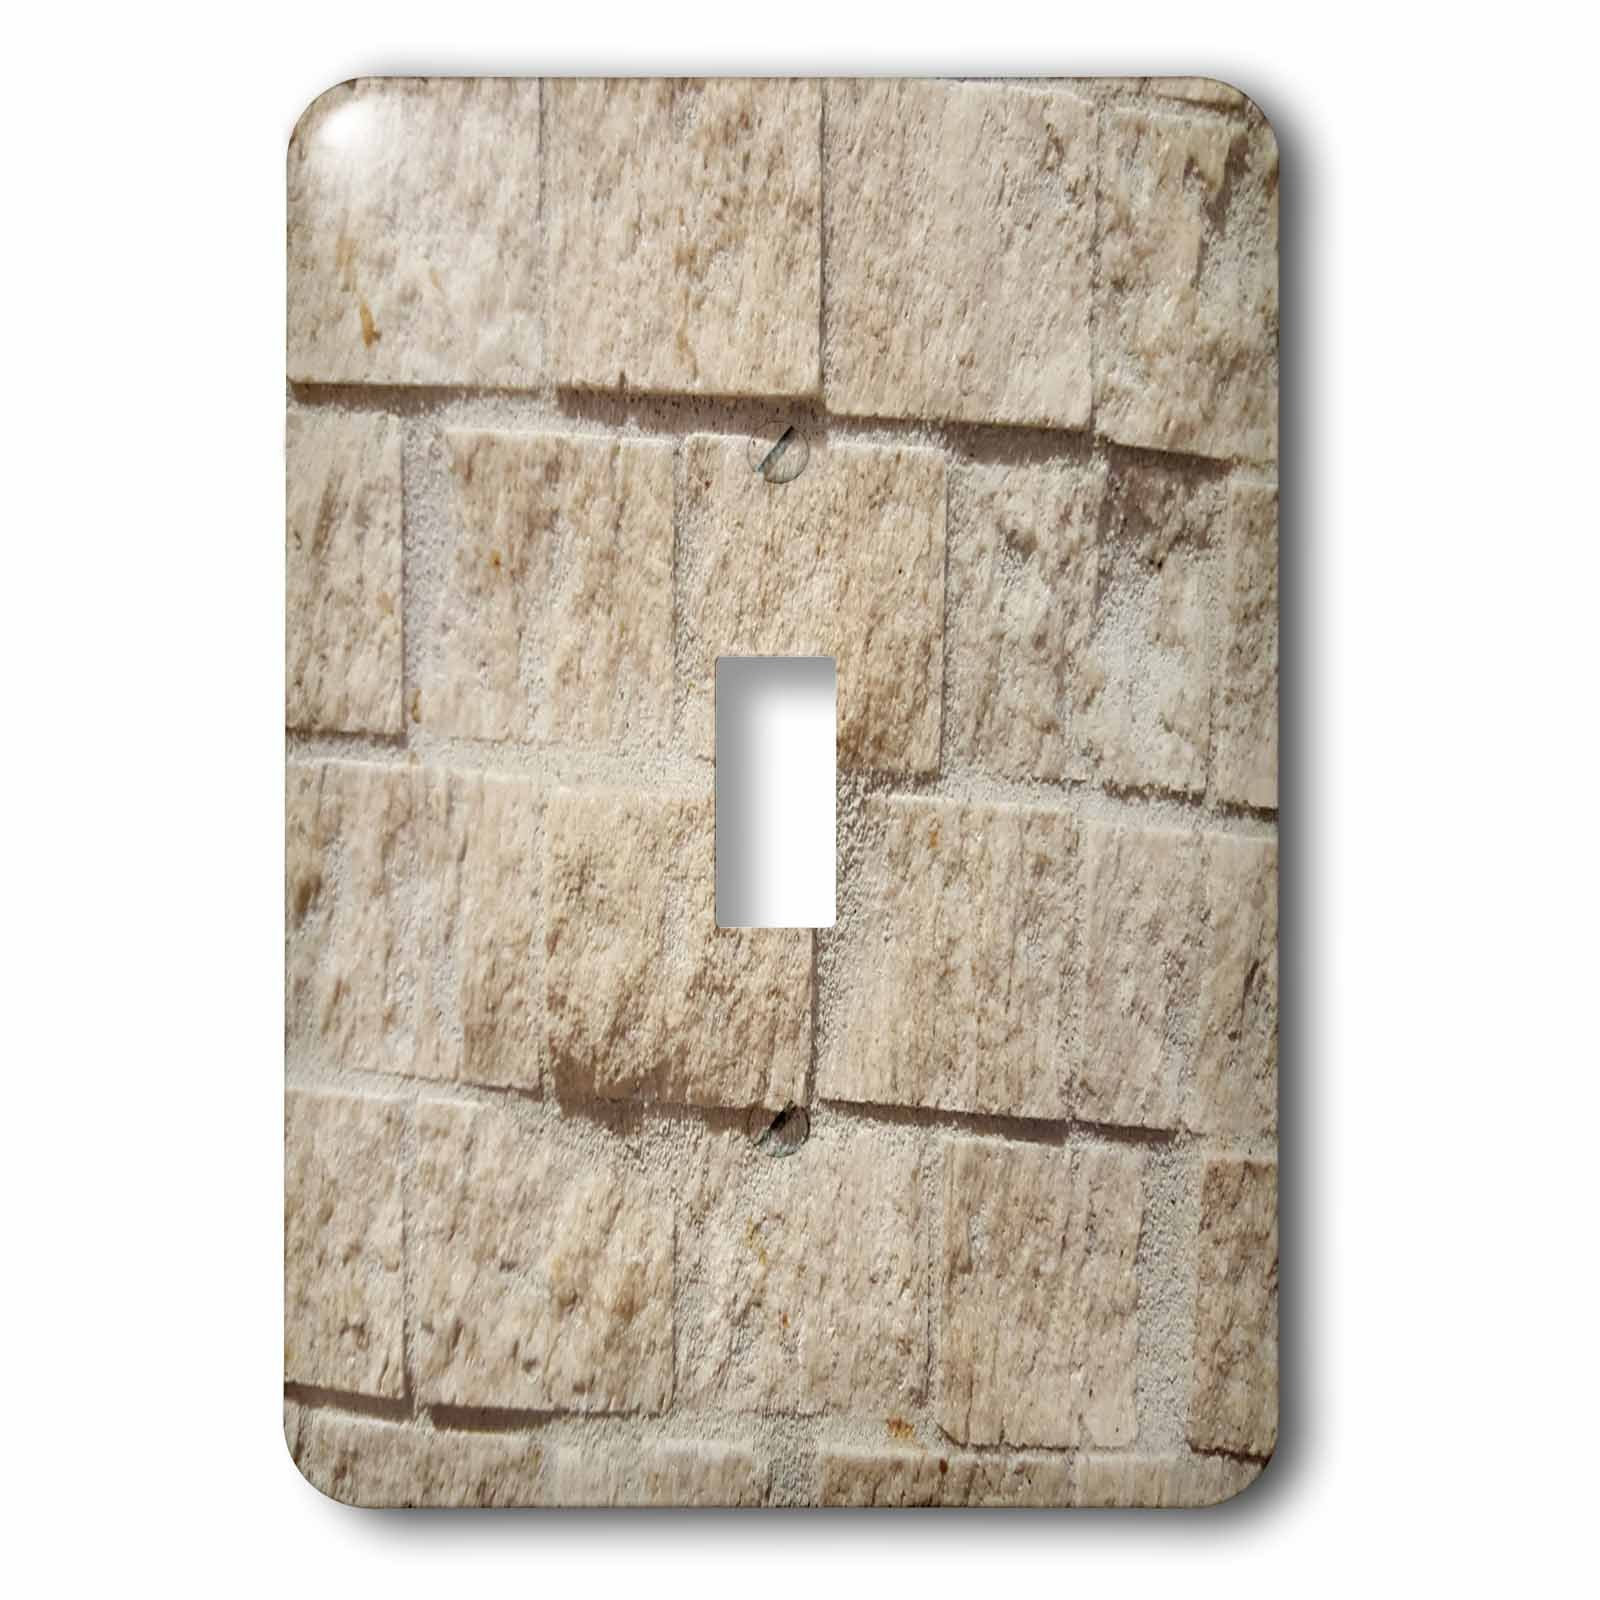 3dRose TDSwhite – Miscellaneous Photography - Tan Brick Wall Stone - Light Switch Covers - single toggle switch (lsp_285266_1)